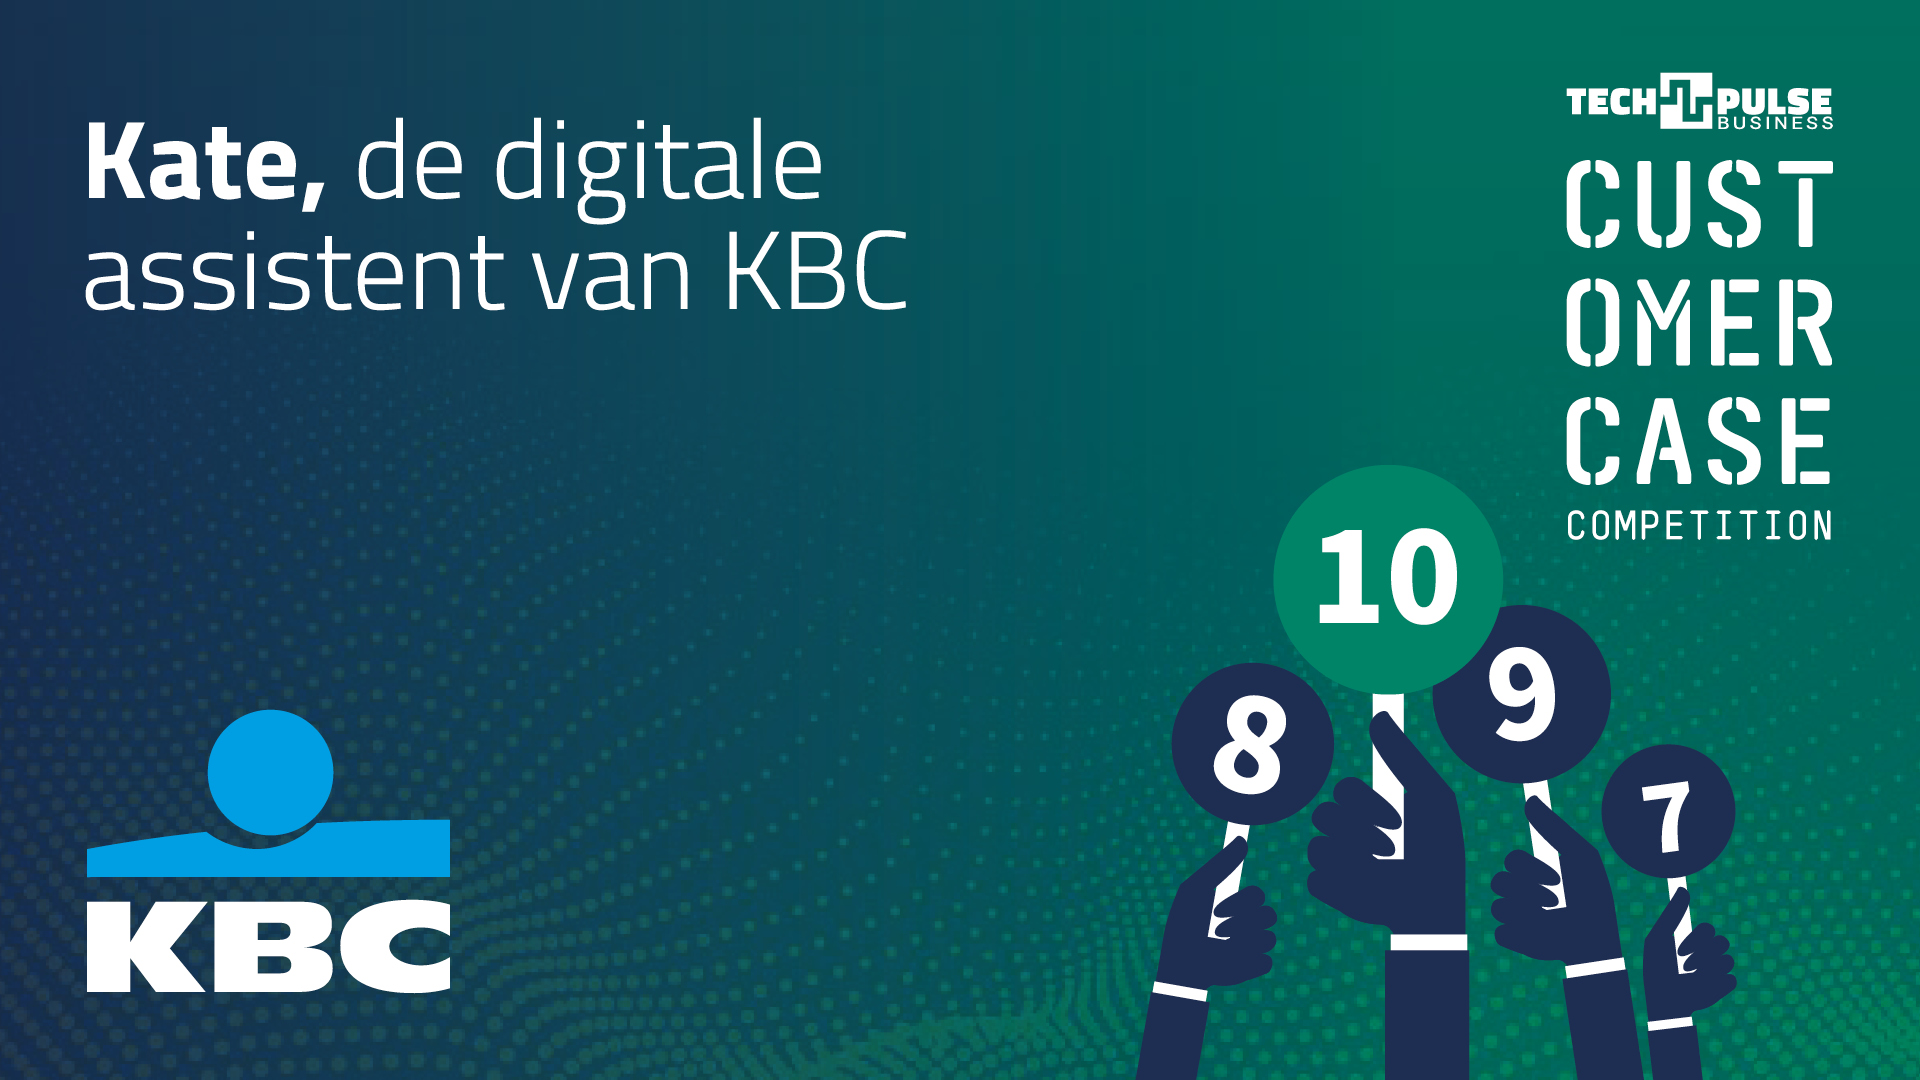 Customer Case Competition: KBC